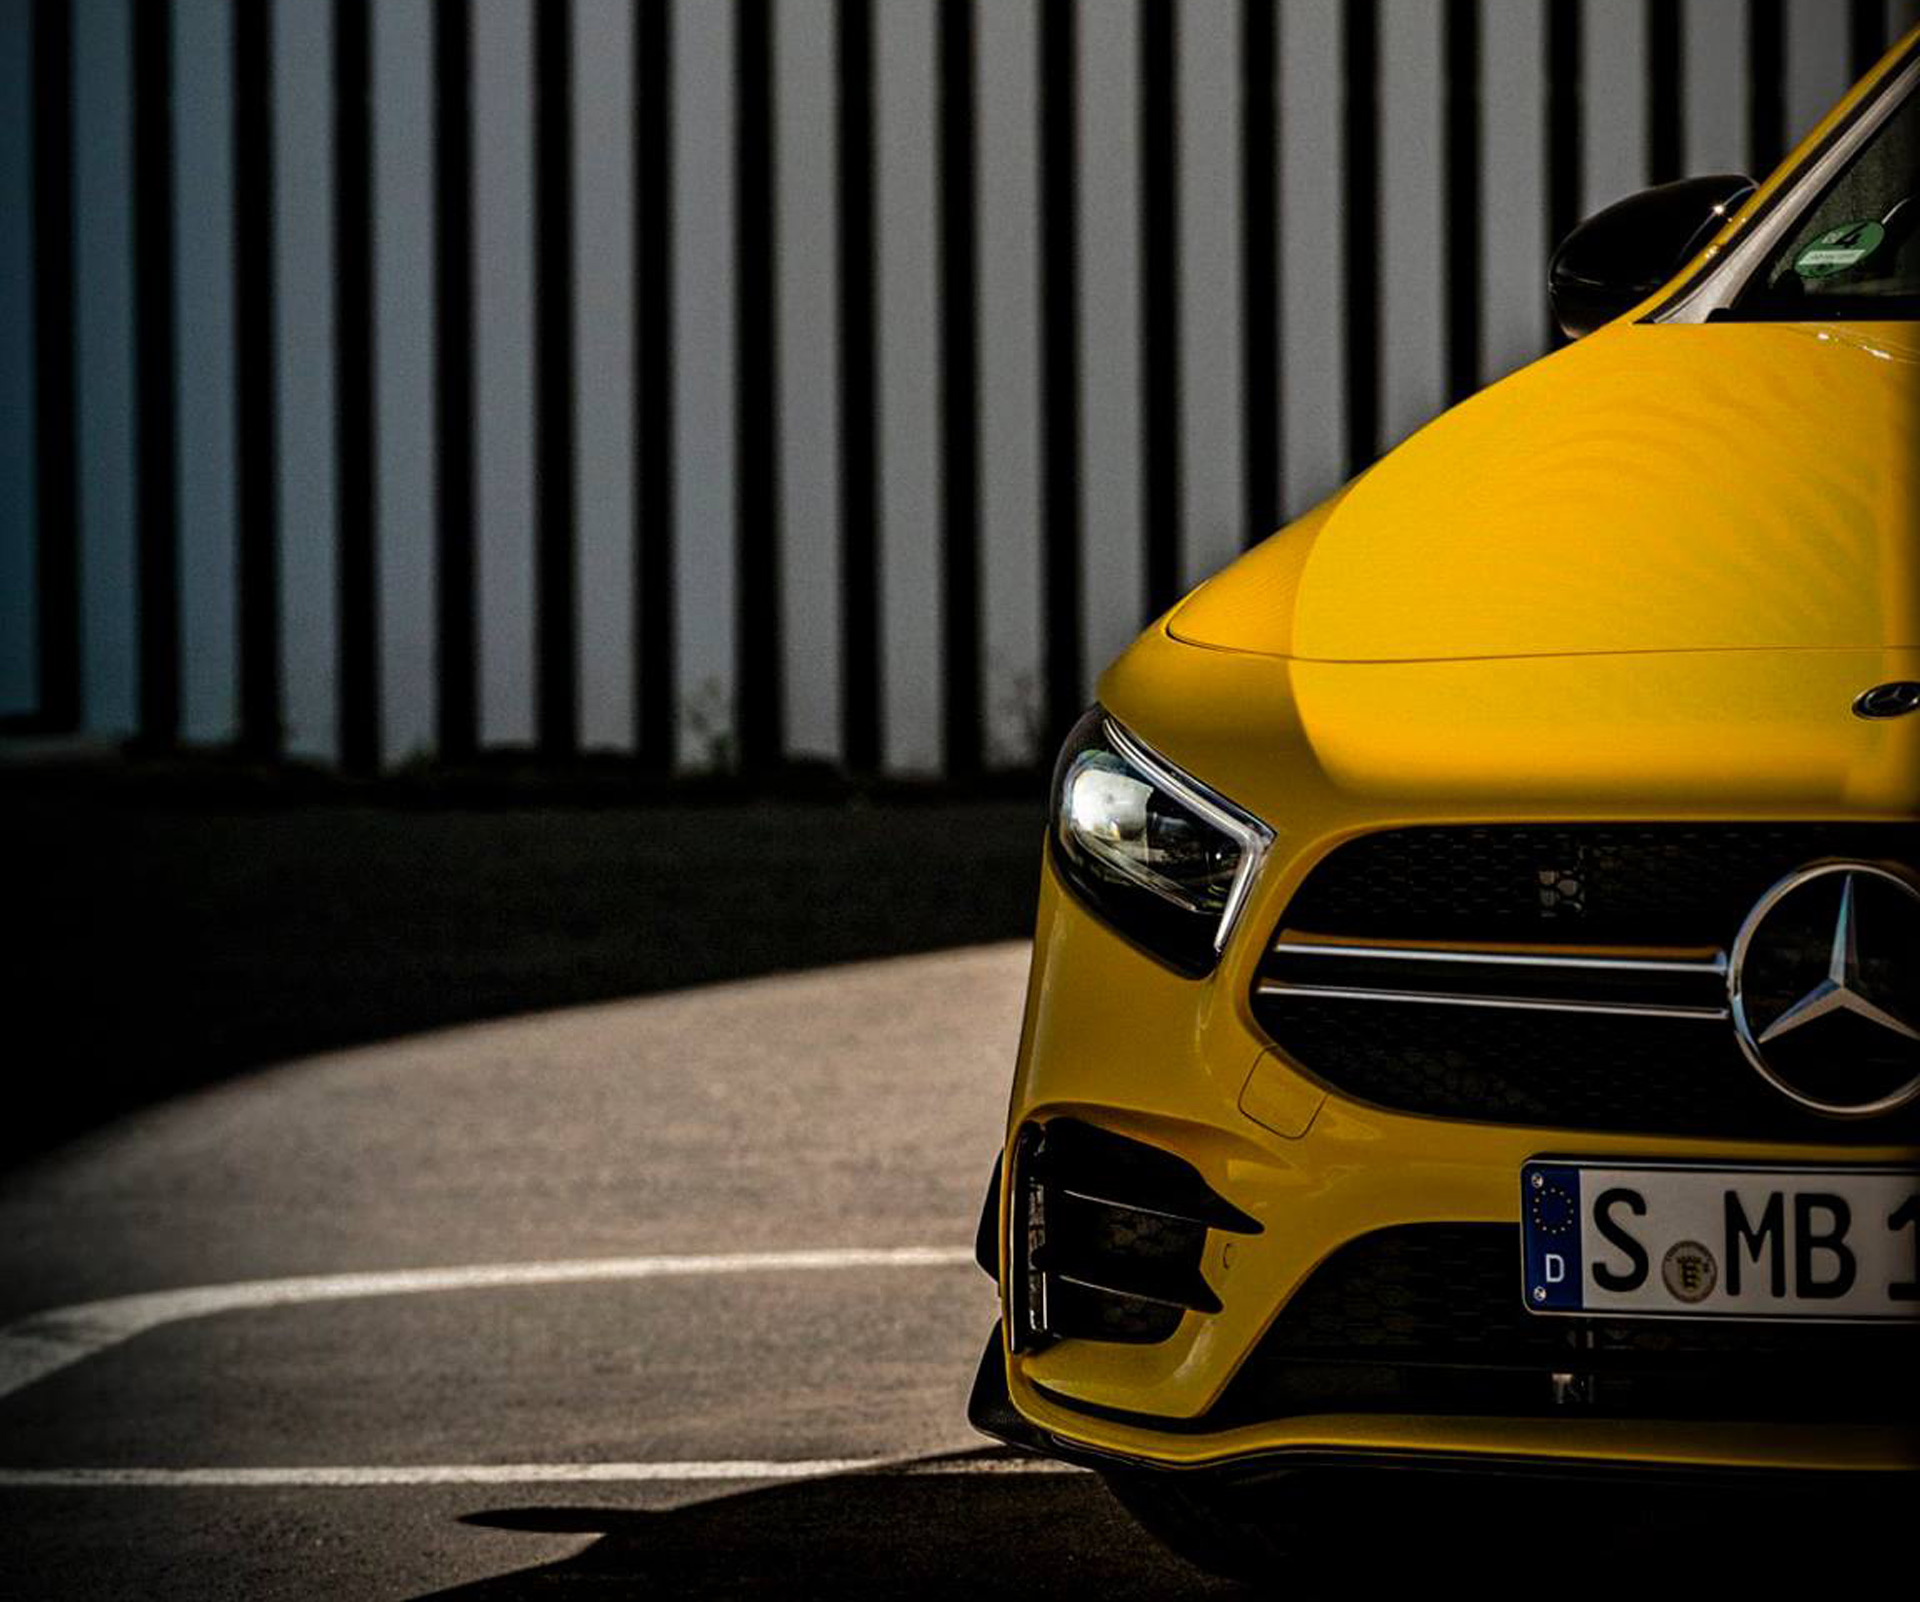 Mercedes AMG A35 hot hatch teased ahead of 2018 Paris auto show 1920x1602